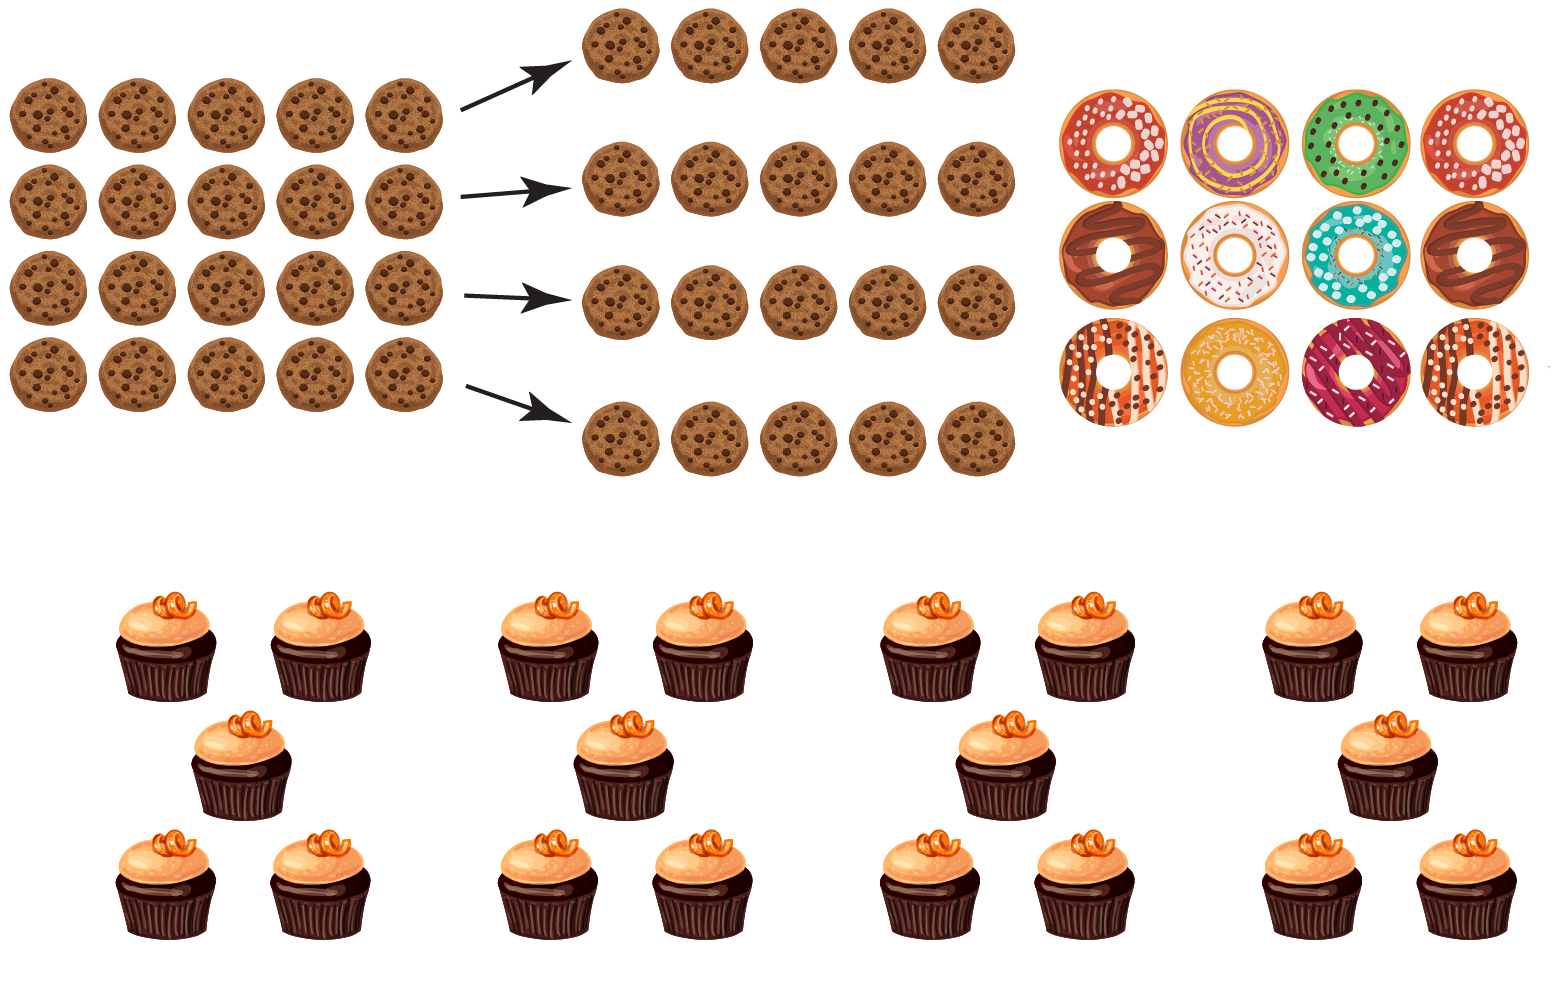 Cookies, muffins, and donuts have to be divided equally between four children